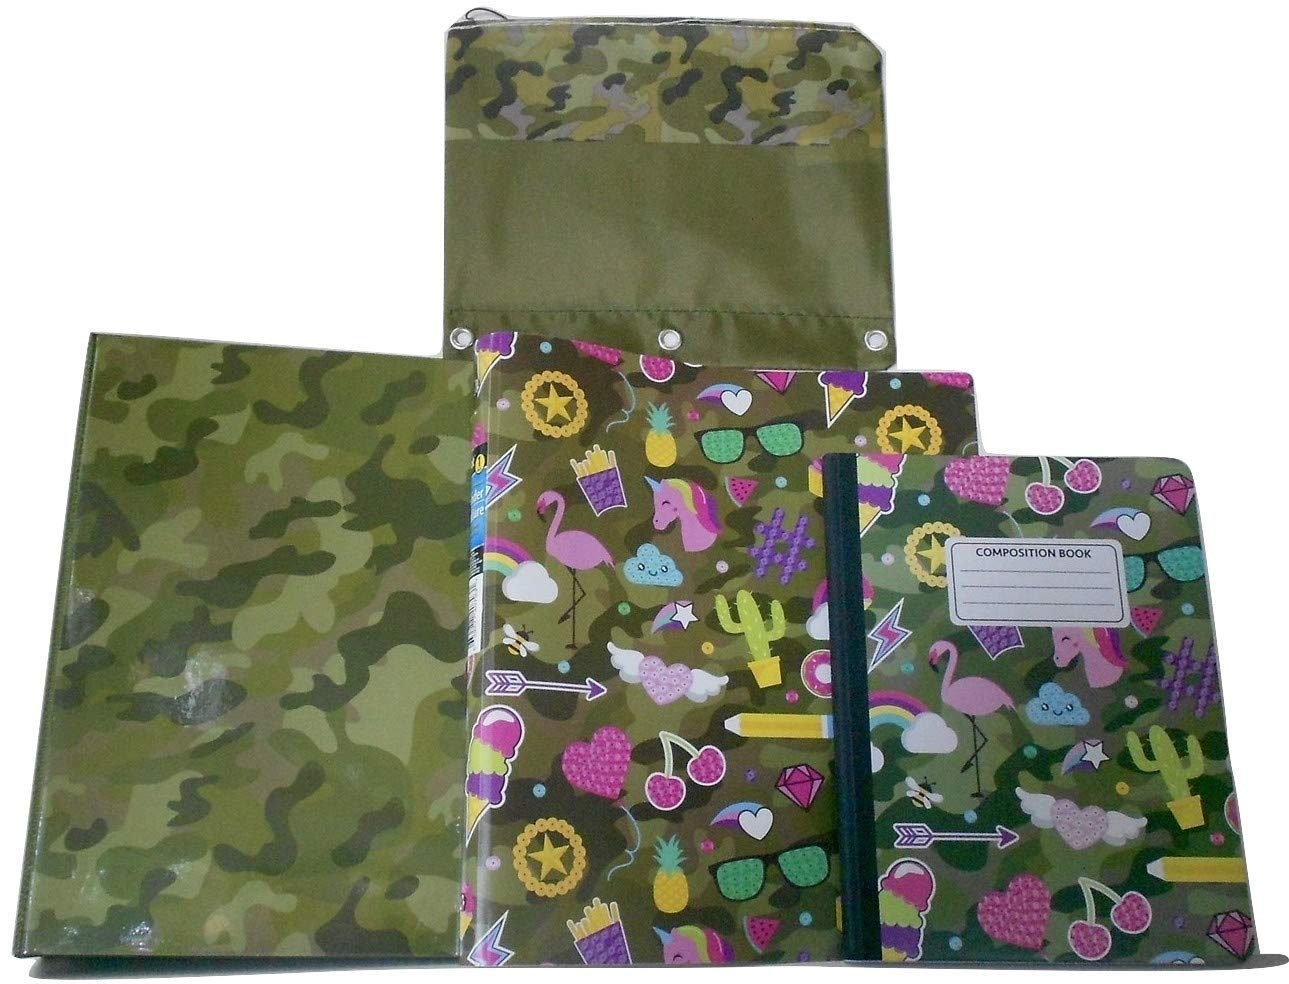 """Camouflage, Unicorns, Rainbows, Flamingos"" Two 1"" Ring Binders, Hardcover Composition Notebook & Camoflage Pattern 3-Ring Binder/Pencil Pouch Bundle - 4 Pieces"